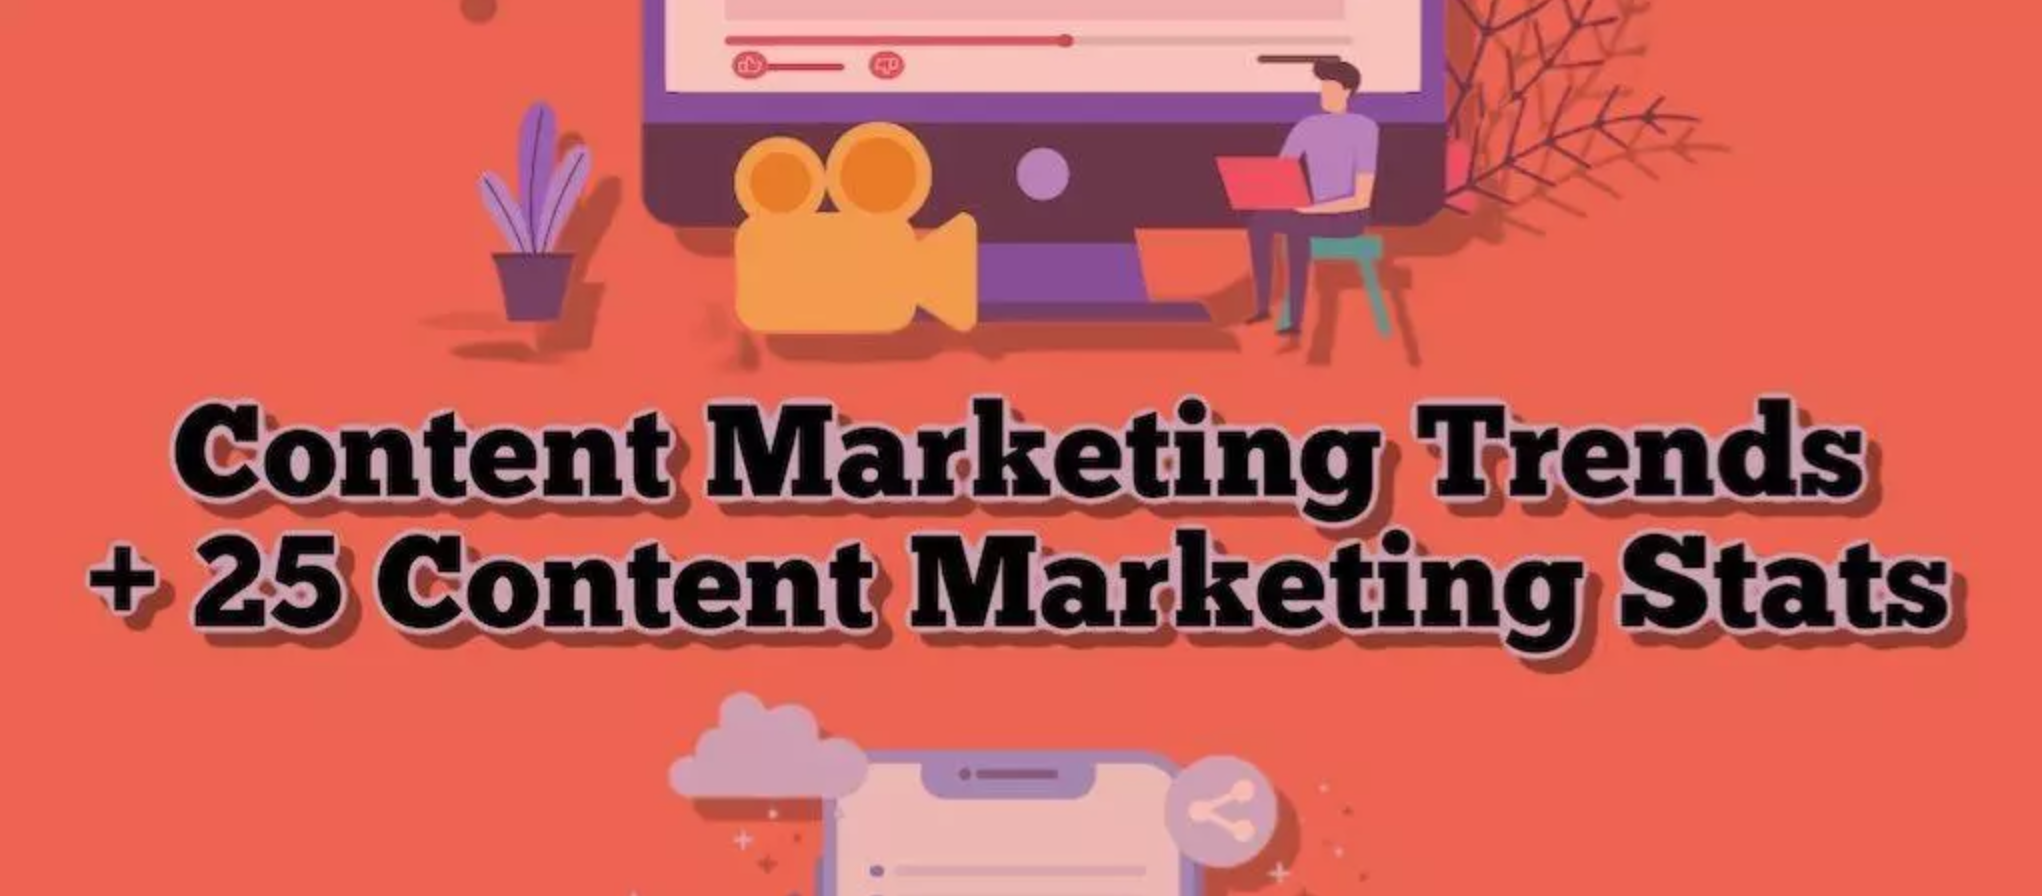 Content Marketing Trends + 25 Content Marketing Stats; graphic courtesy of author.